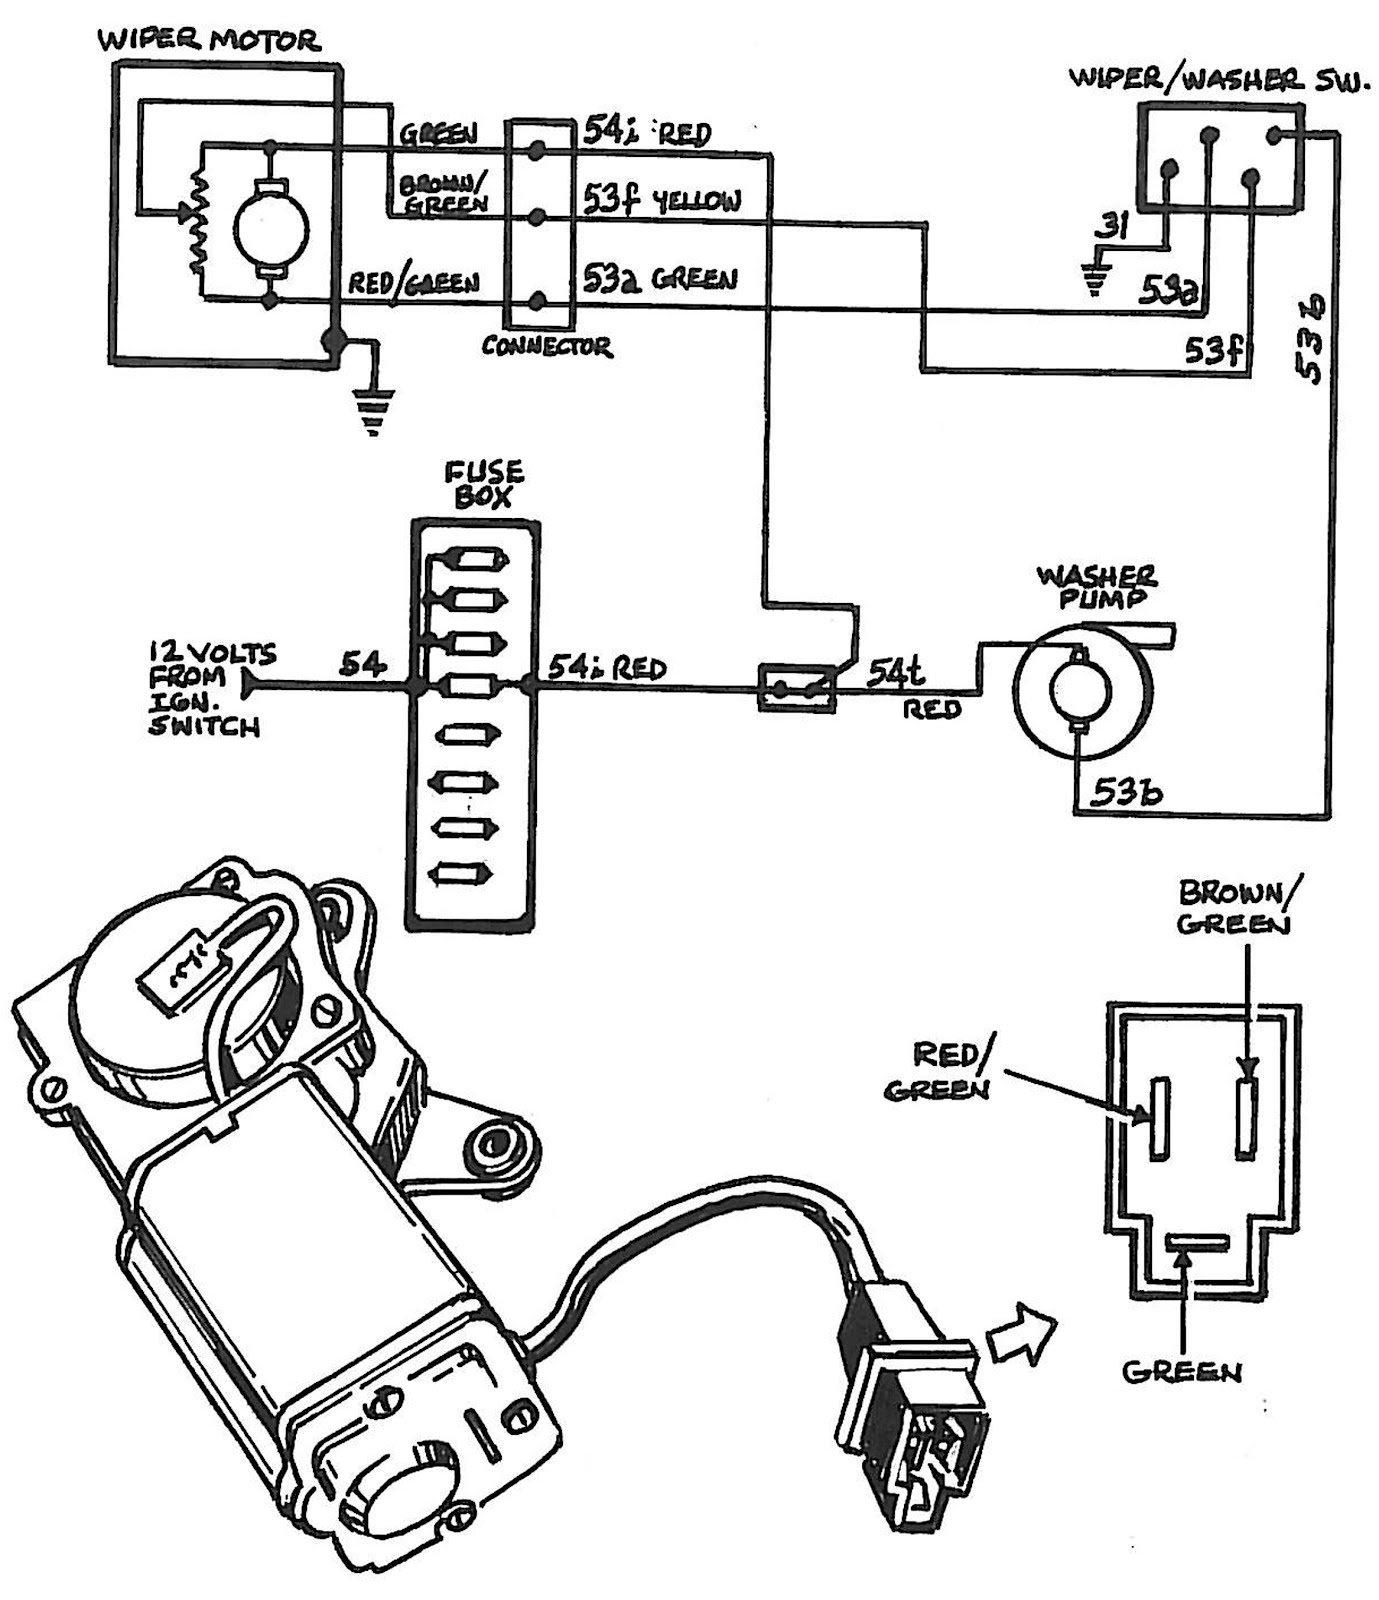 Diagram Wiring Diagram For 1970 Chevrolet C10 Wiper Motor Full Version Hd Quality Wiper Motor Skematik110isi Gsdportotorres It